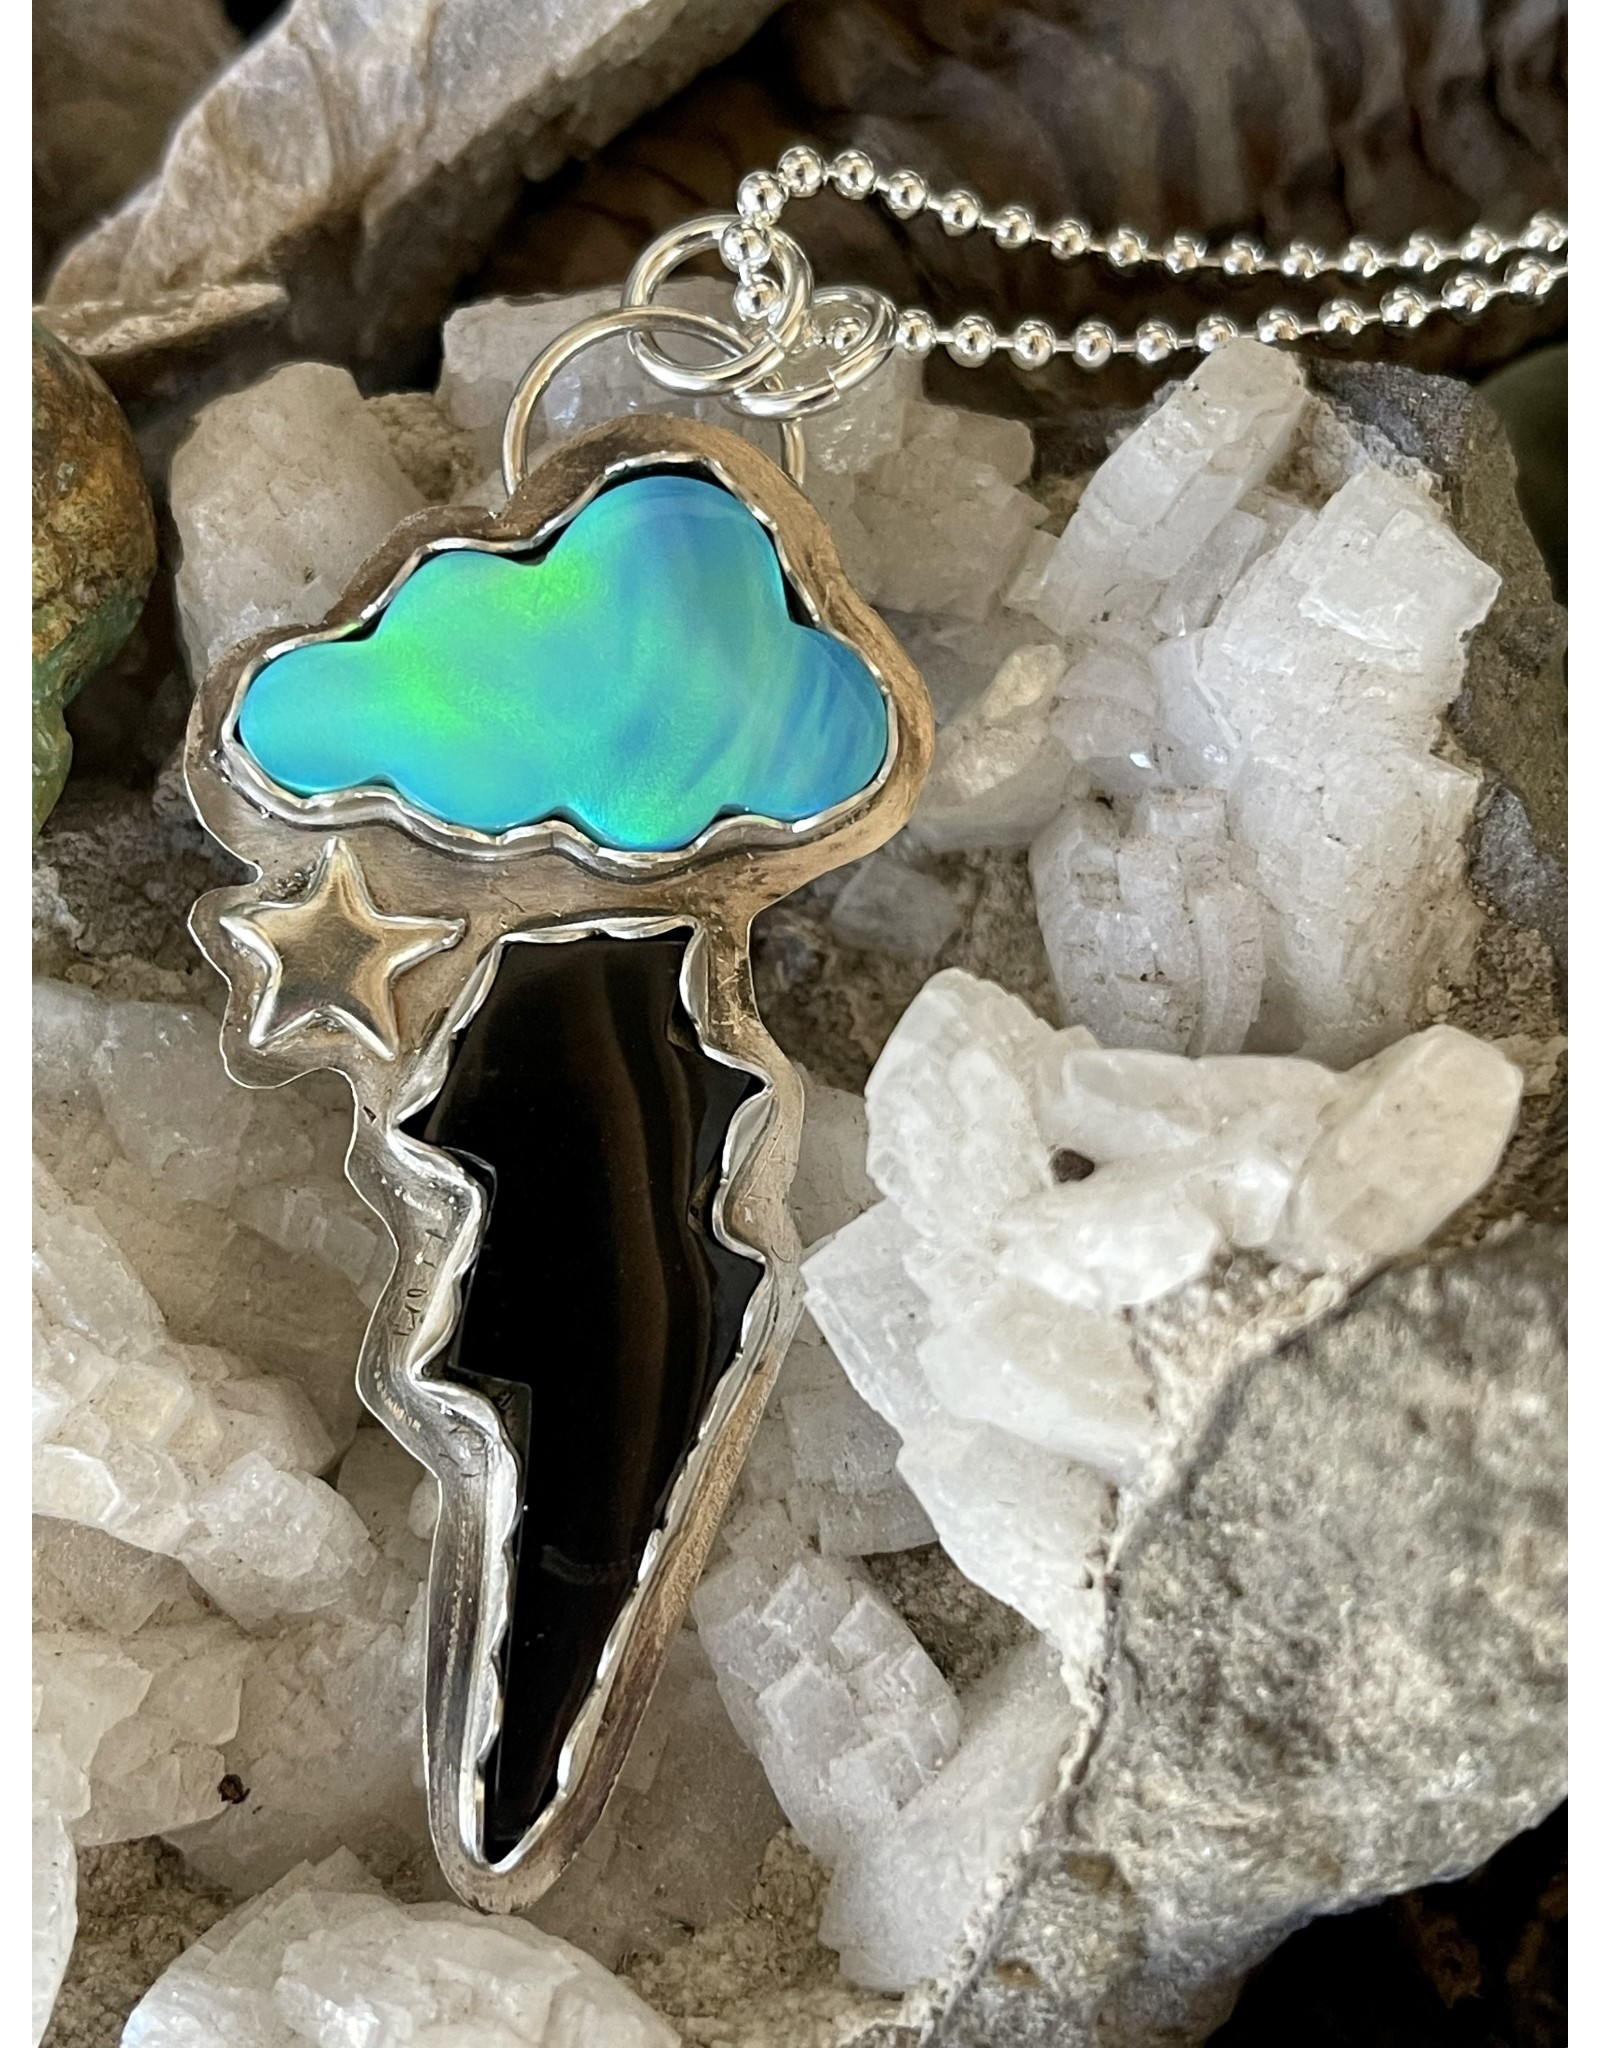 Annette Colby - Jeweler Nova Opal Cloud Jet Bolt Necklace with Star by Annette Colby